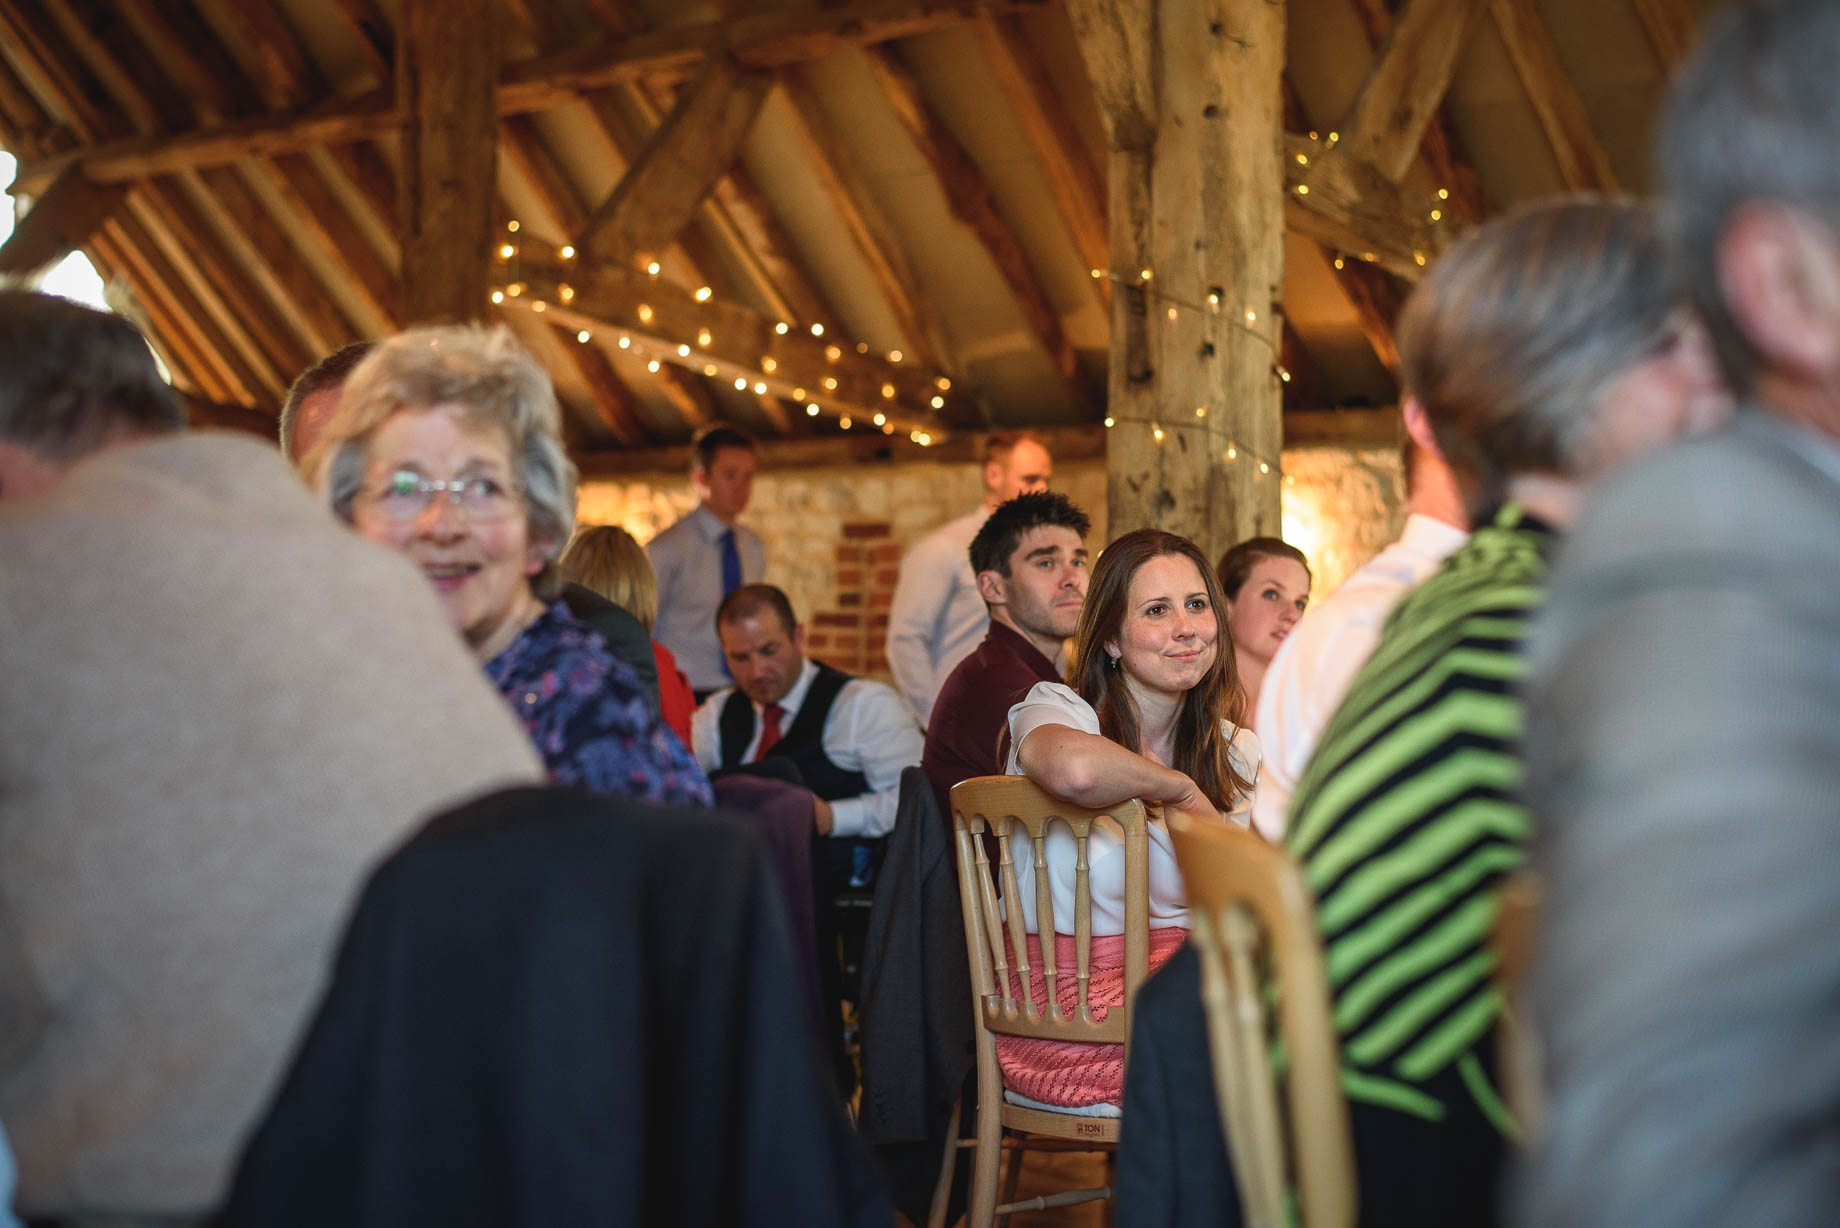 Bury Court Barn wedding photography by Guy Collier - Heather and Pat (118 of 170)